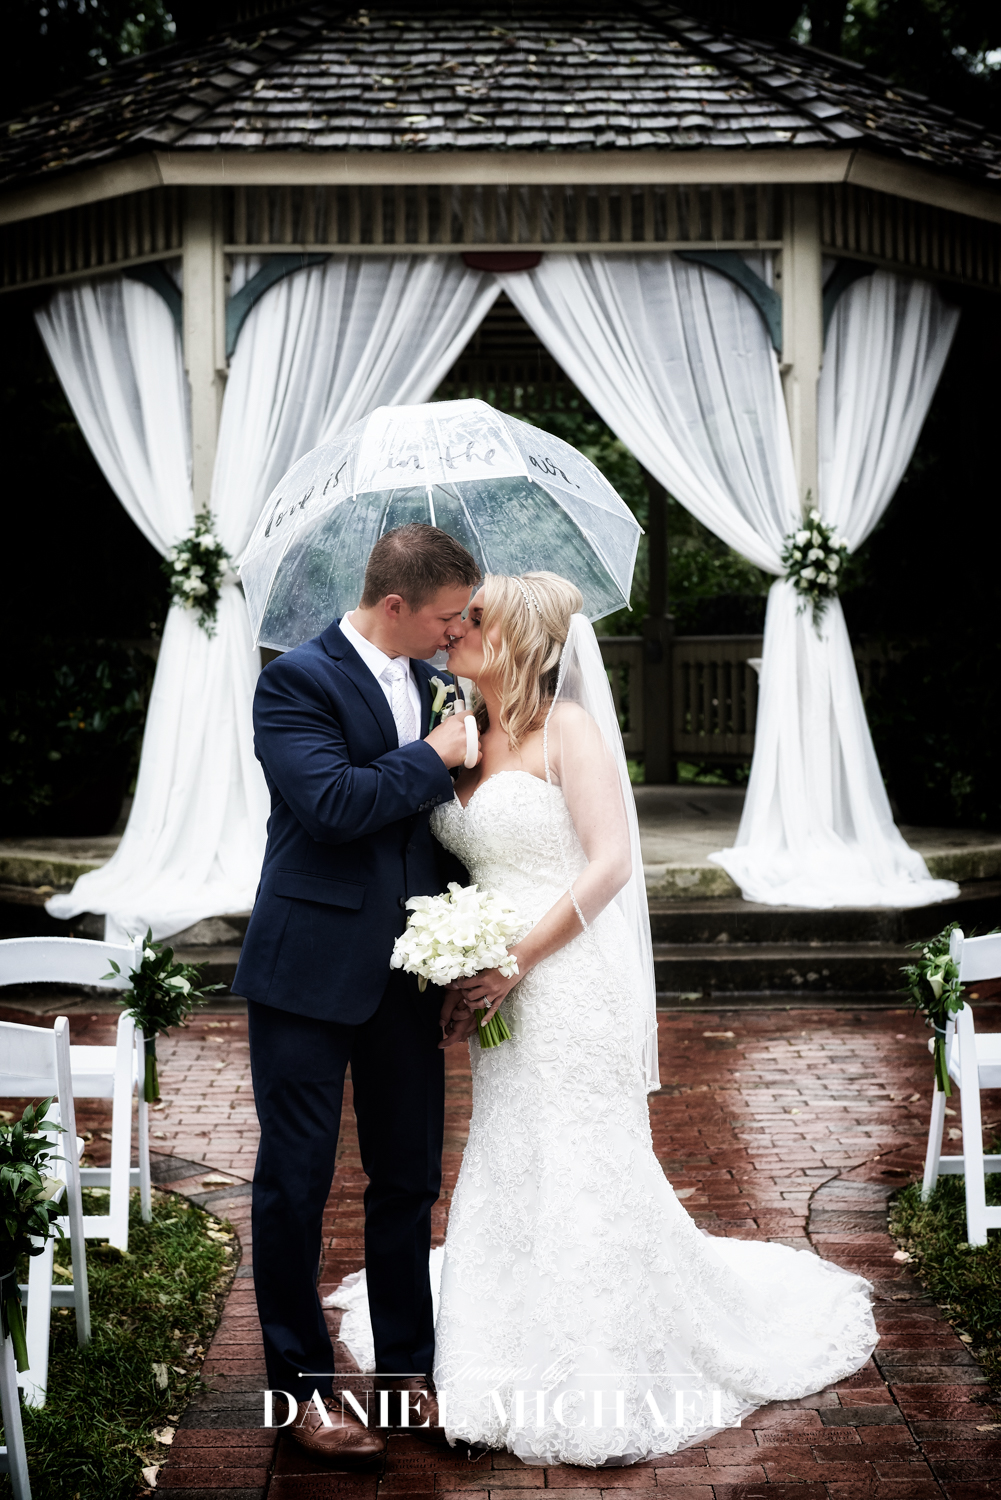 Wedding Photography in Rain